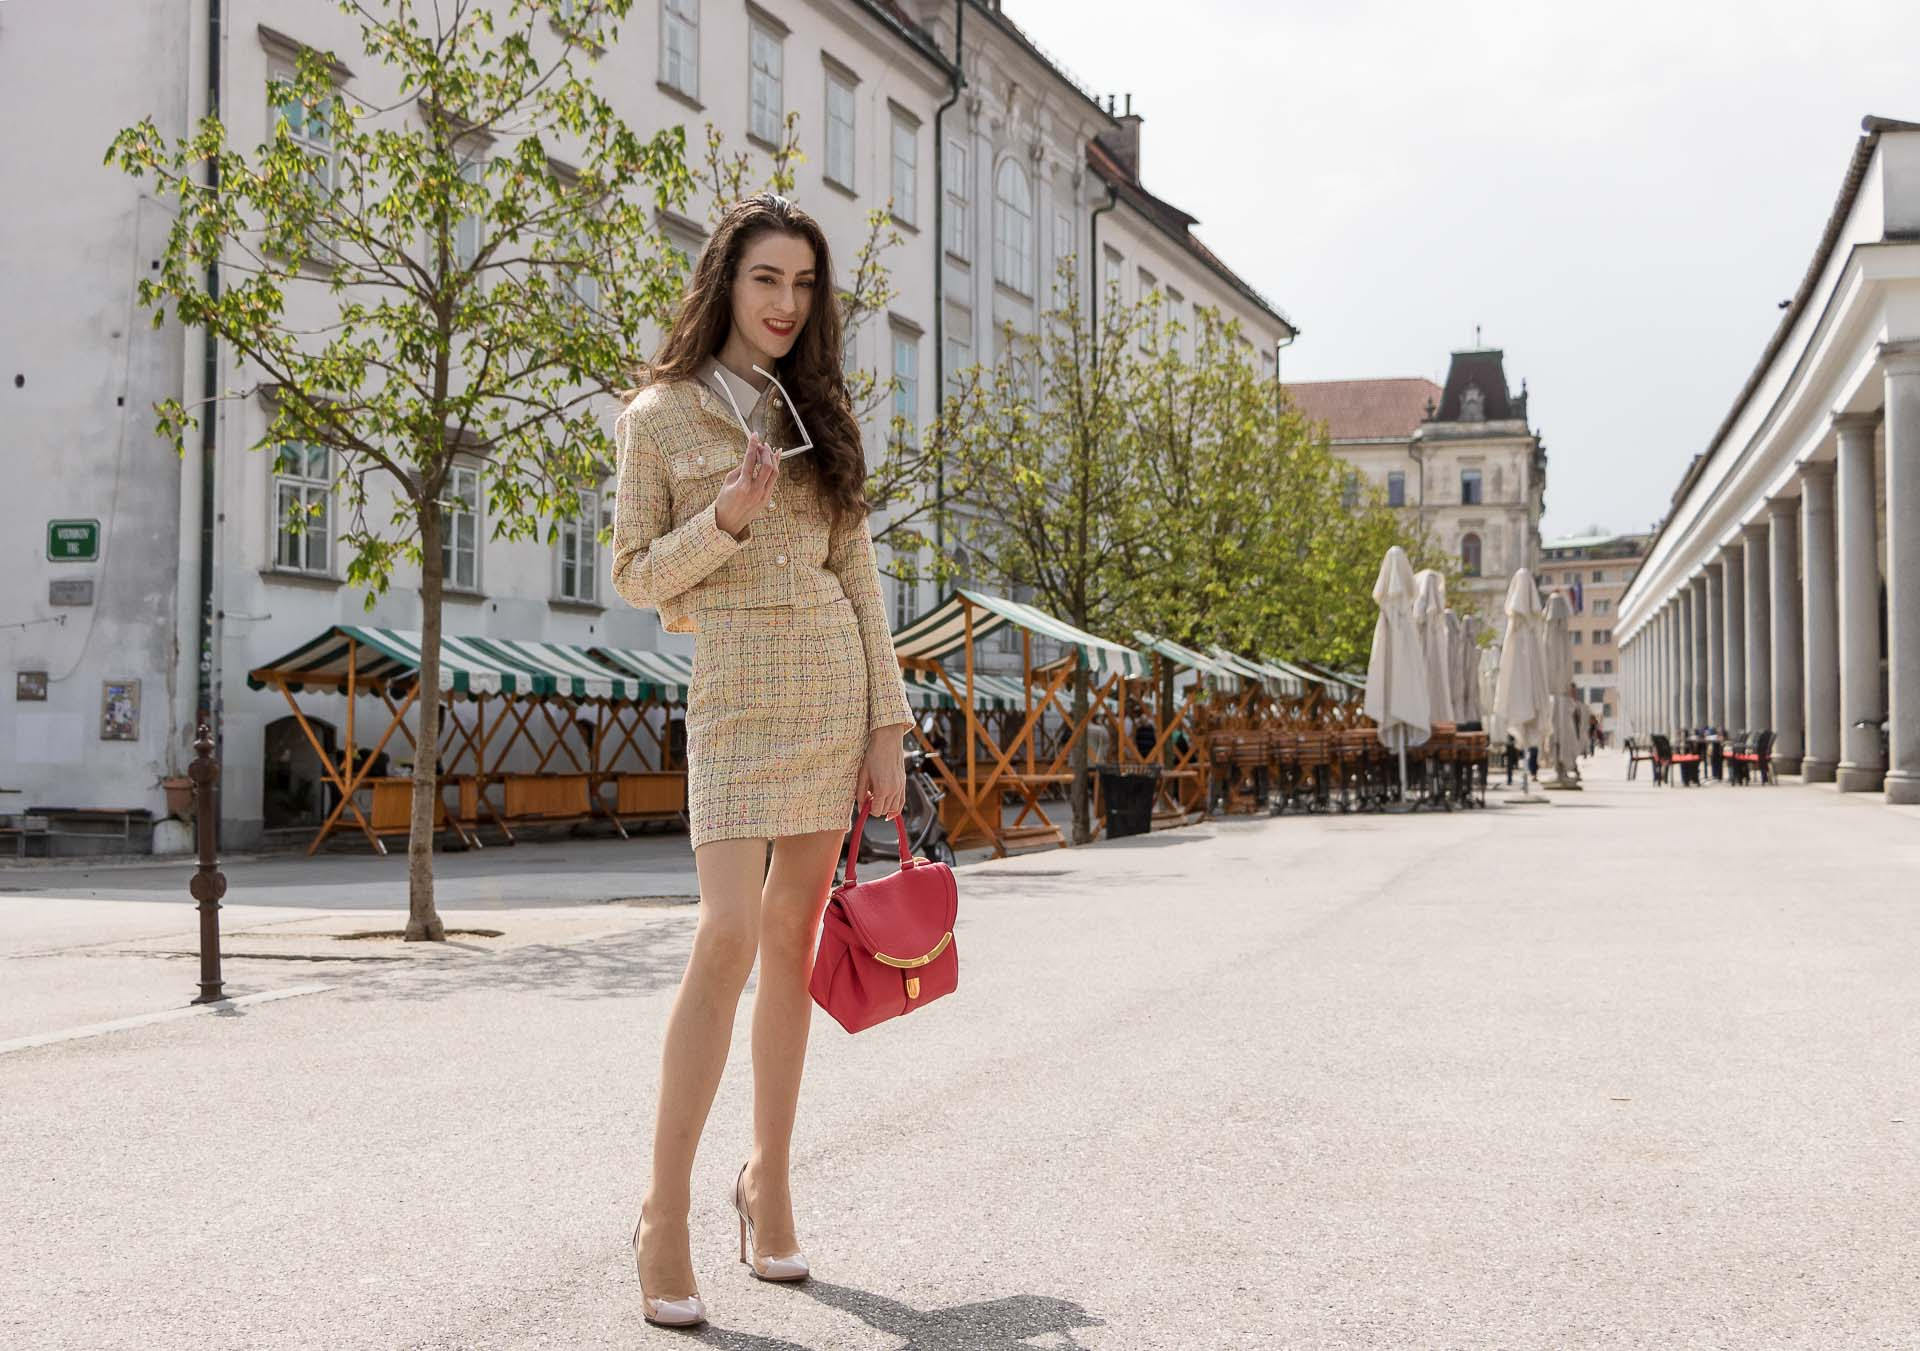 Fashion Blogger Veronika Lipar of Brunette from Wall Street wearing Storets yellow tweed mini skirt suit, Gianvito Rossi plexi pumps, See by Chloe pink top handle bag standing on the street in Ljubljana